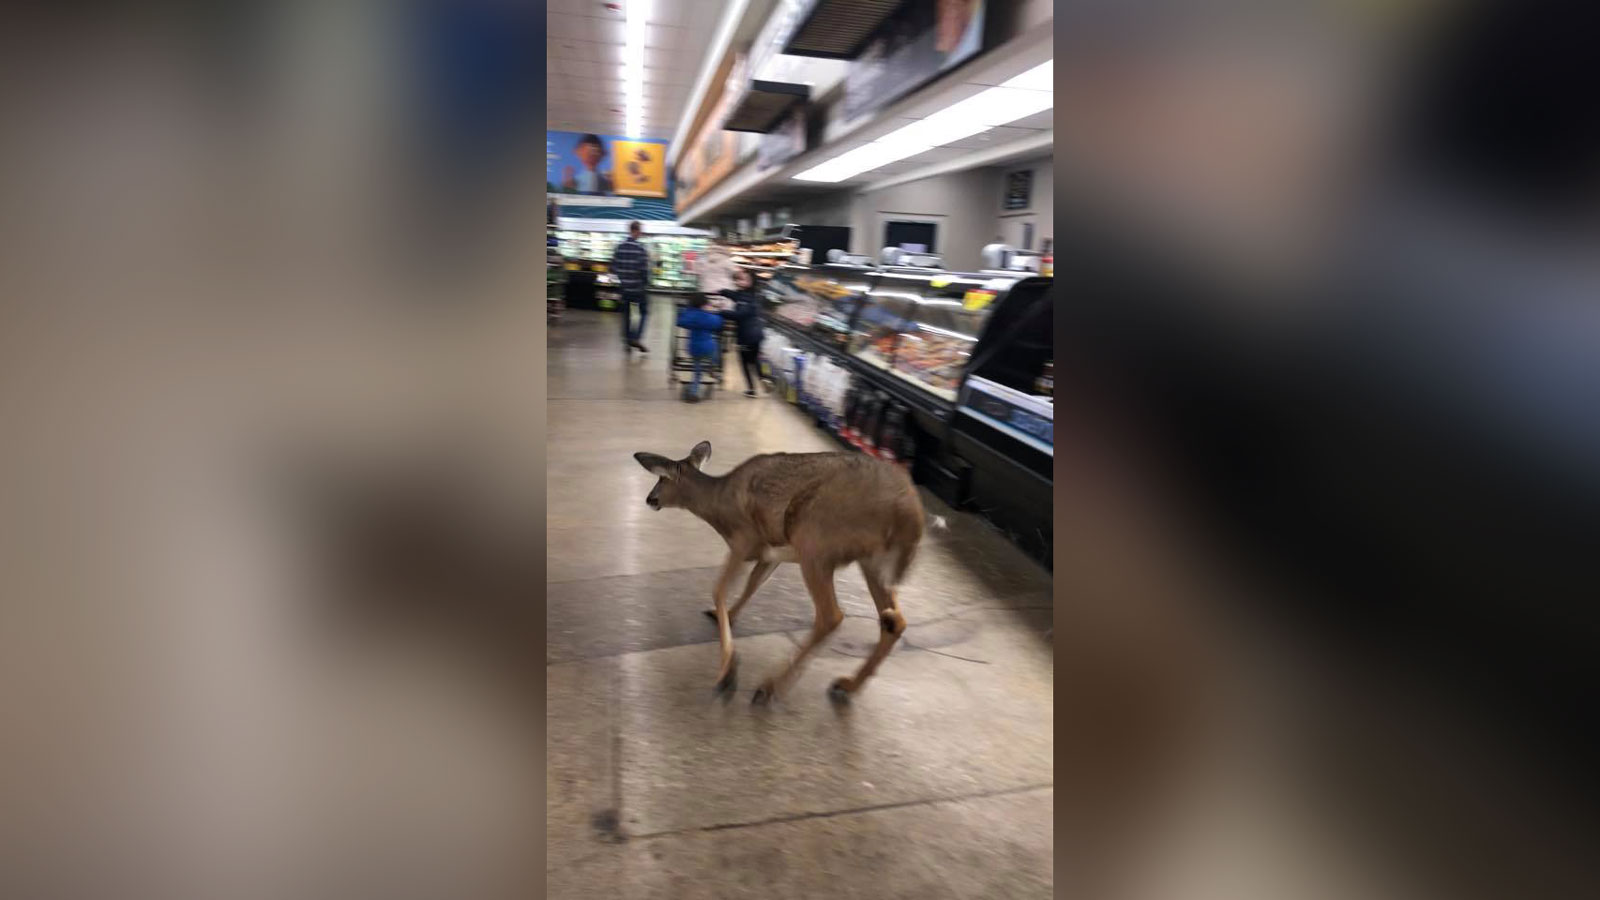 """Customers inside an Indiana Kroger were surprised to see a deer running """"frantically"""" in the store. Staff and police tried to catch the deer but it eventually made it back outside. (Mia Nail Spa VonMia from Facebook)"""